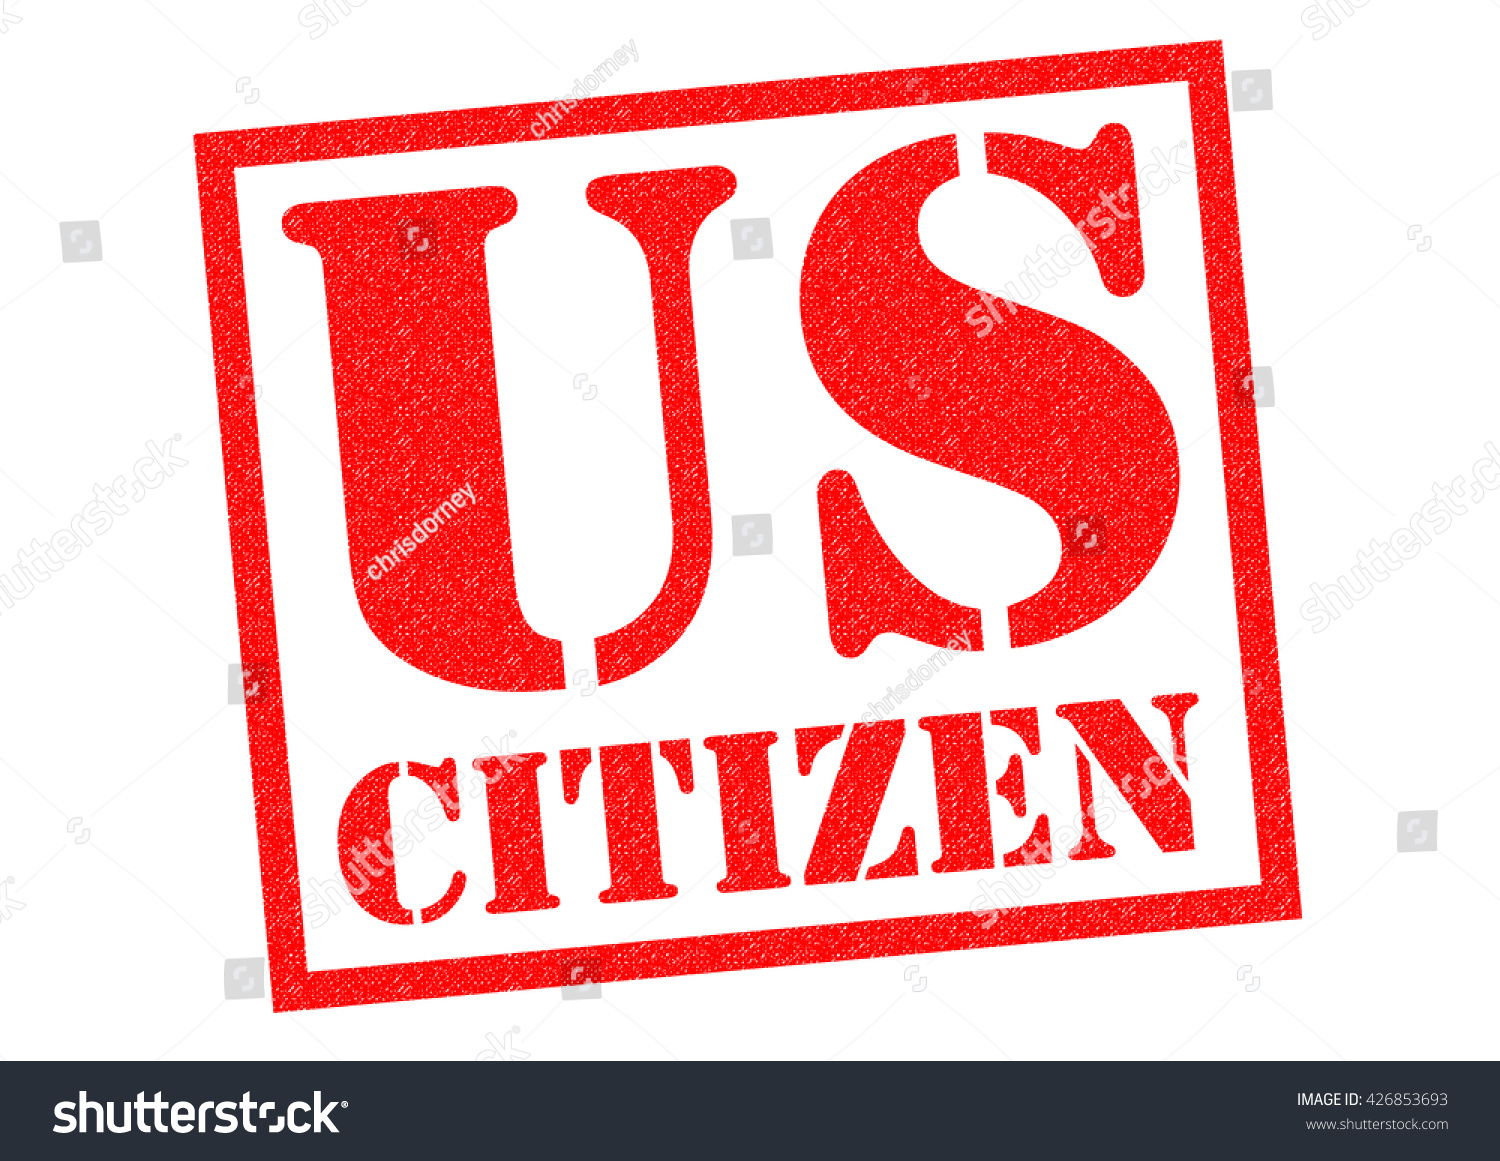 u s citizenship Learn about the us citizenship application process, naturalization requirements,  and the benefits and obligations of becoming an american citizen.